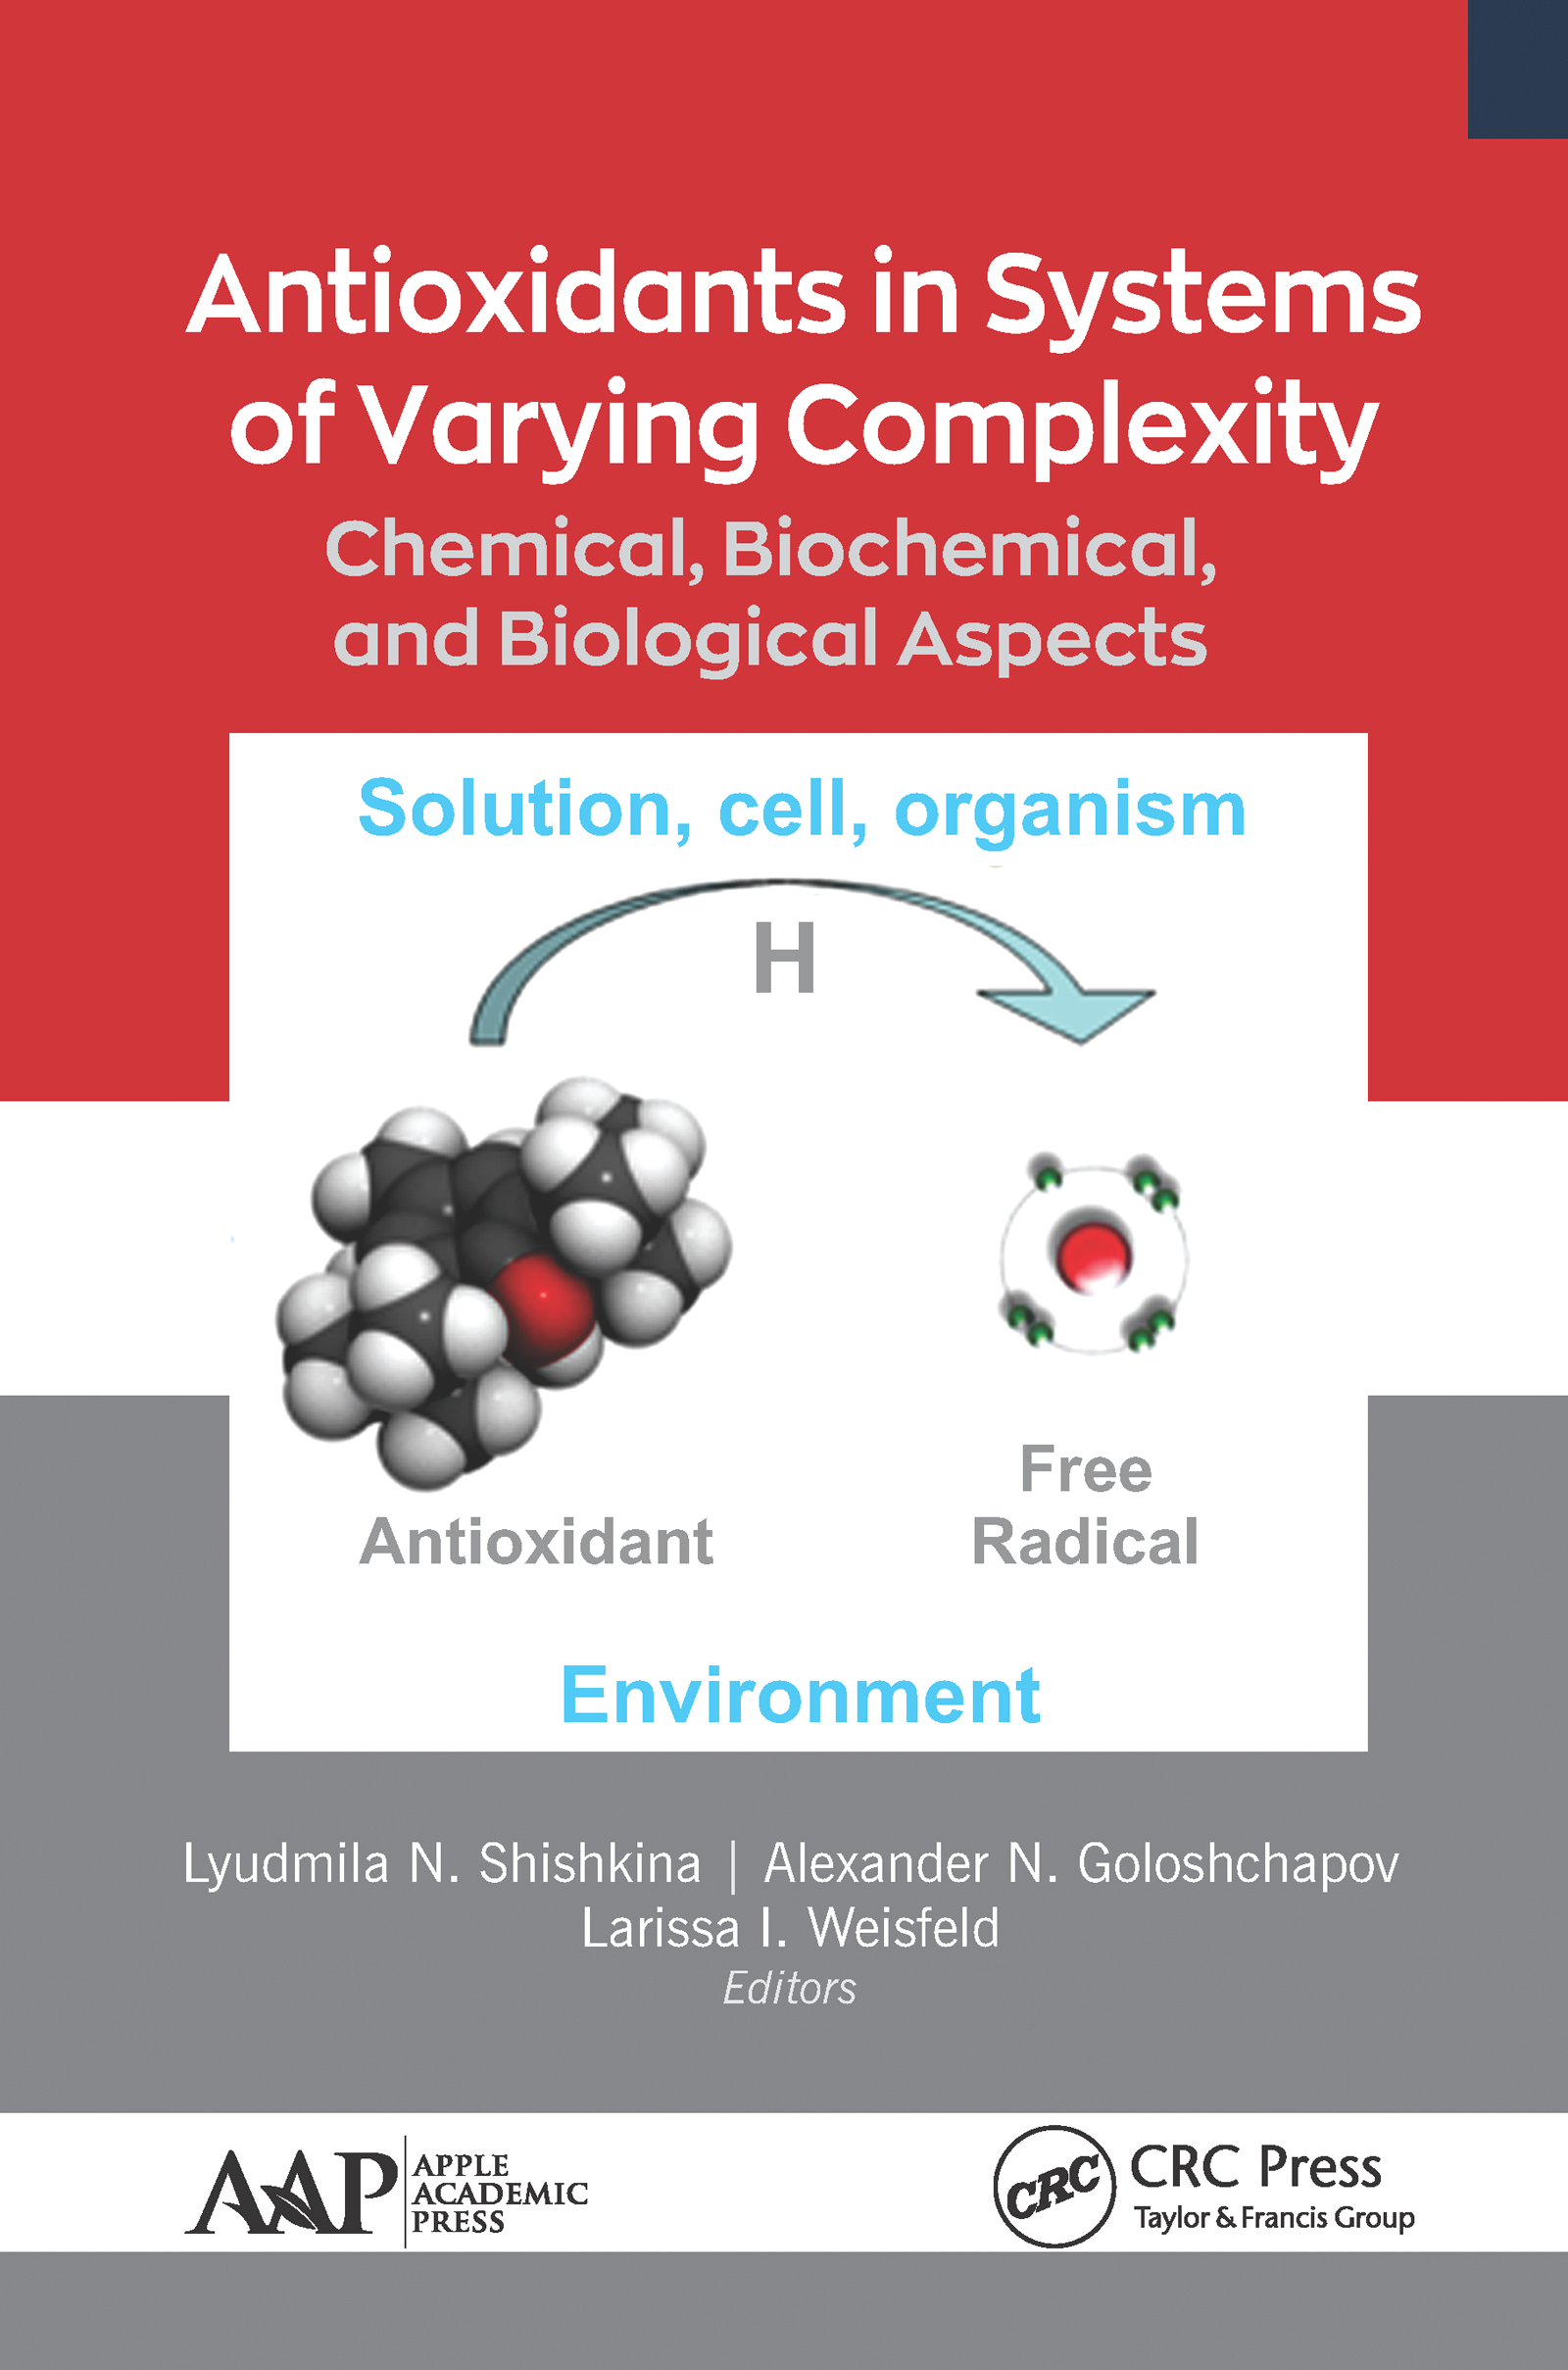 Antioxidants in Systems of Varying Complexity